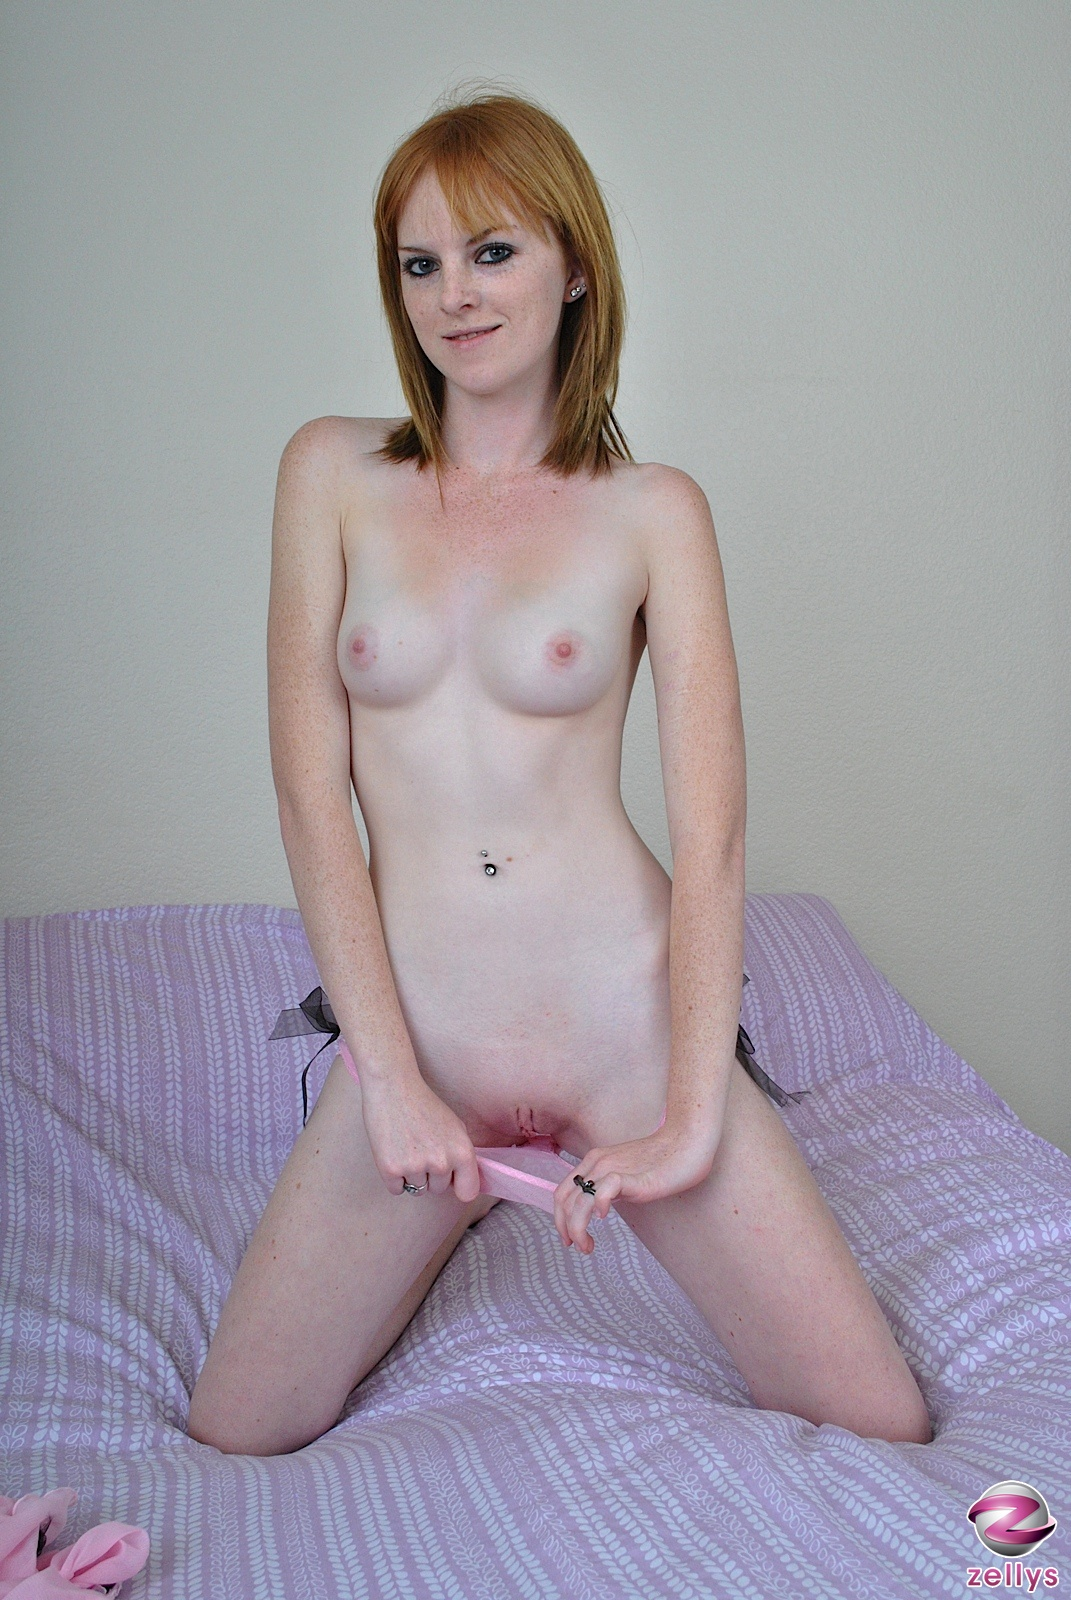 Seems Redhead wife nude pity, that